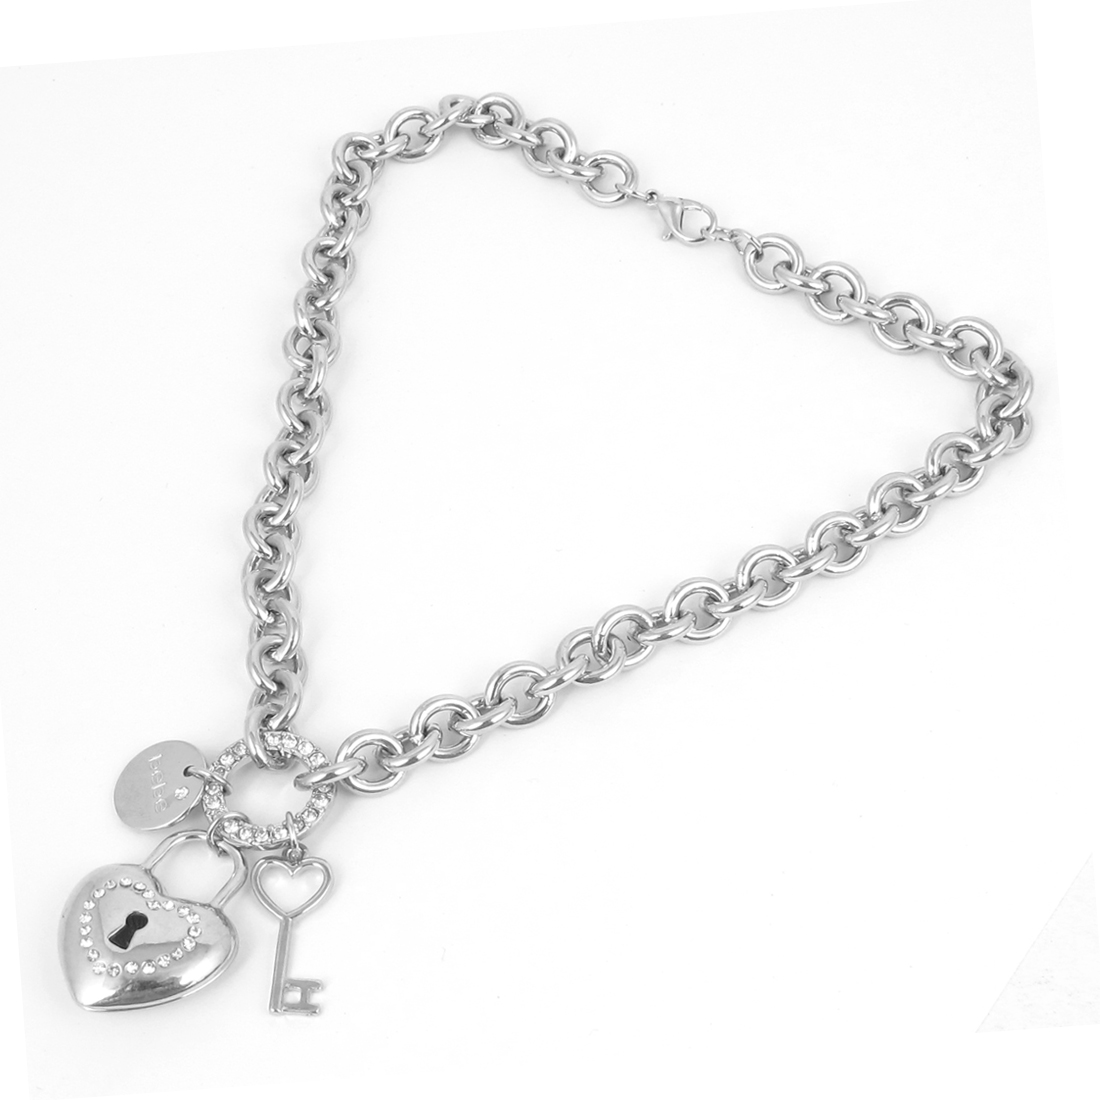 Metal Key Heart Shape Lock Palstic Crystals Inlaided Circle Design Pendant Lobster Clasp Silver Tone Pet Dog Decor Collar Necklace